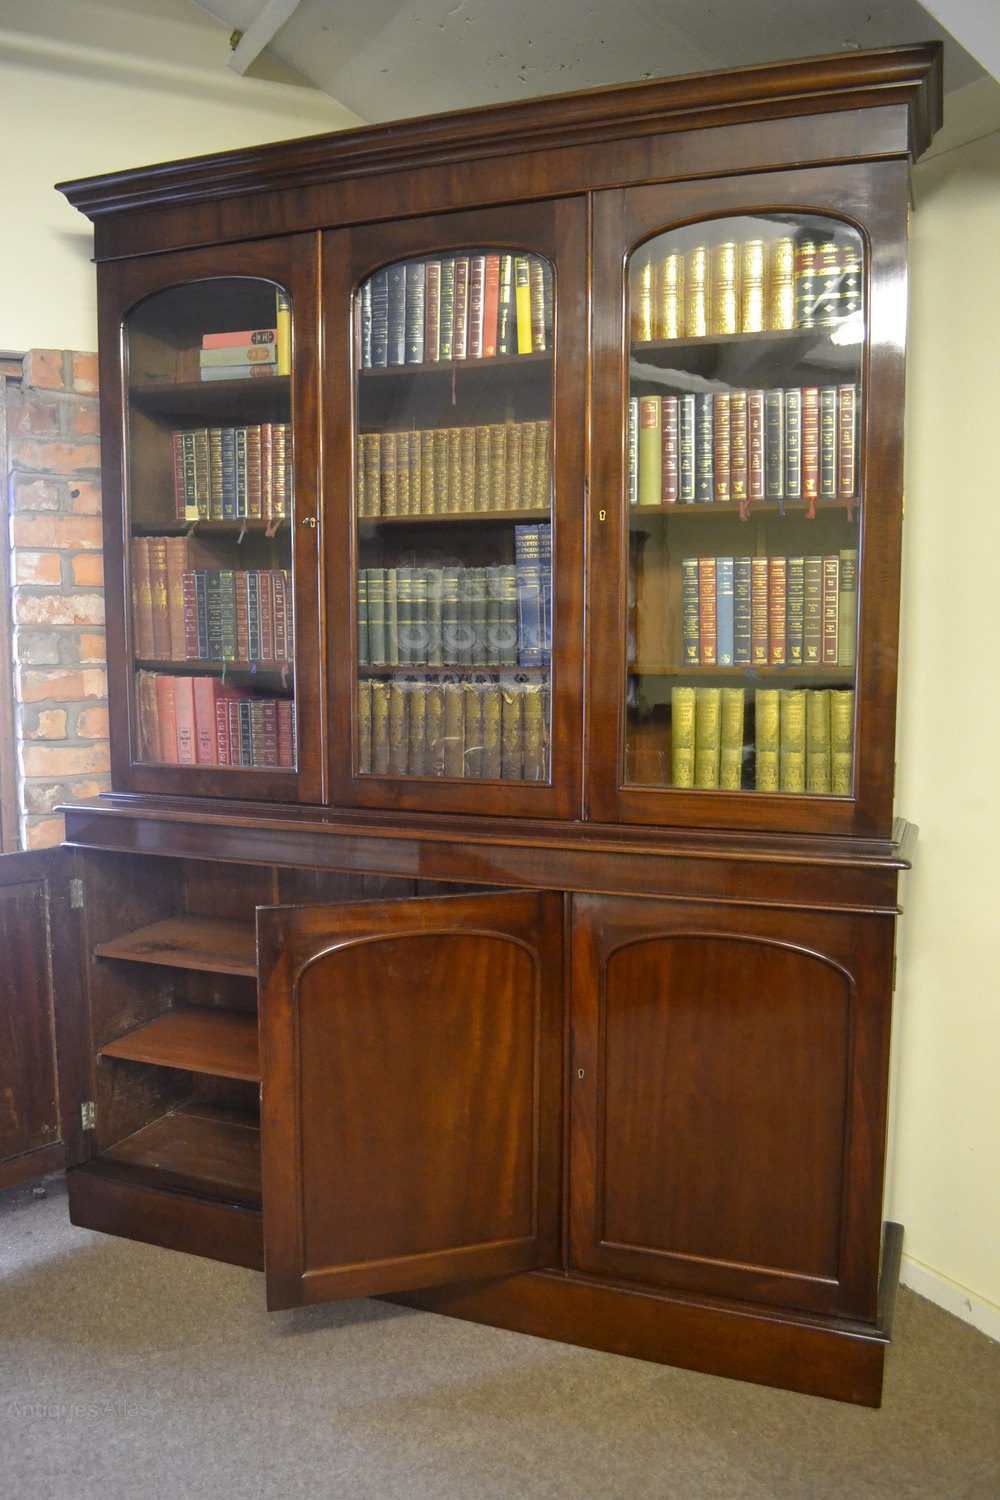 Antique library bookcases Custom Built Library Victorian Mahogany Library Bookcase C1870 Antique Library Bookcases Antiques Atlas Victorian Mahogany Library Bookcase C1870 Antiques Atlas